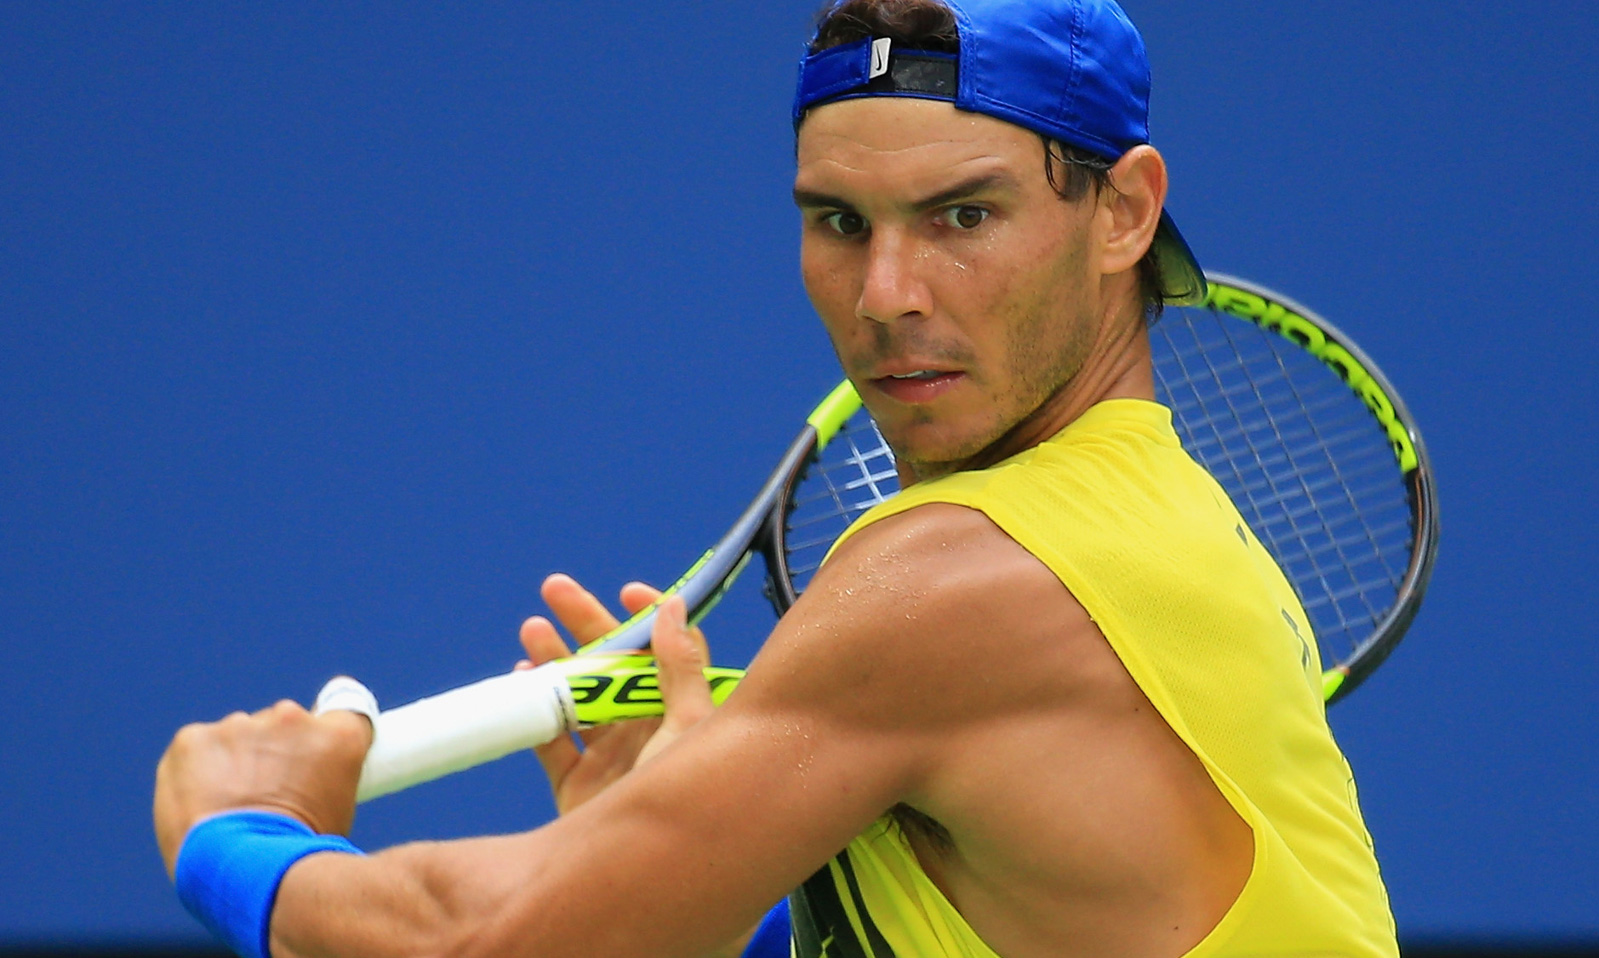 Rafael Nadal Explains Why He Wears Shorter Tennis Shorts Rafael Nadal Just Jared